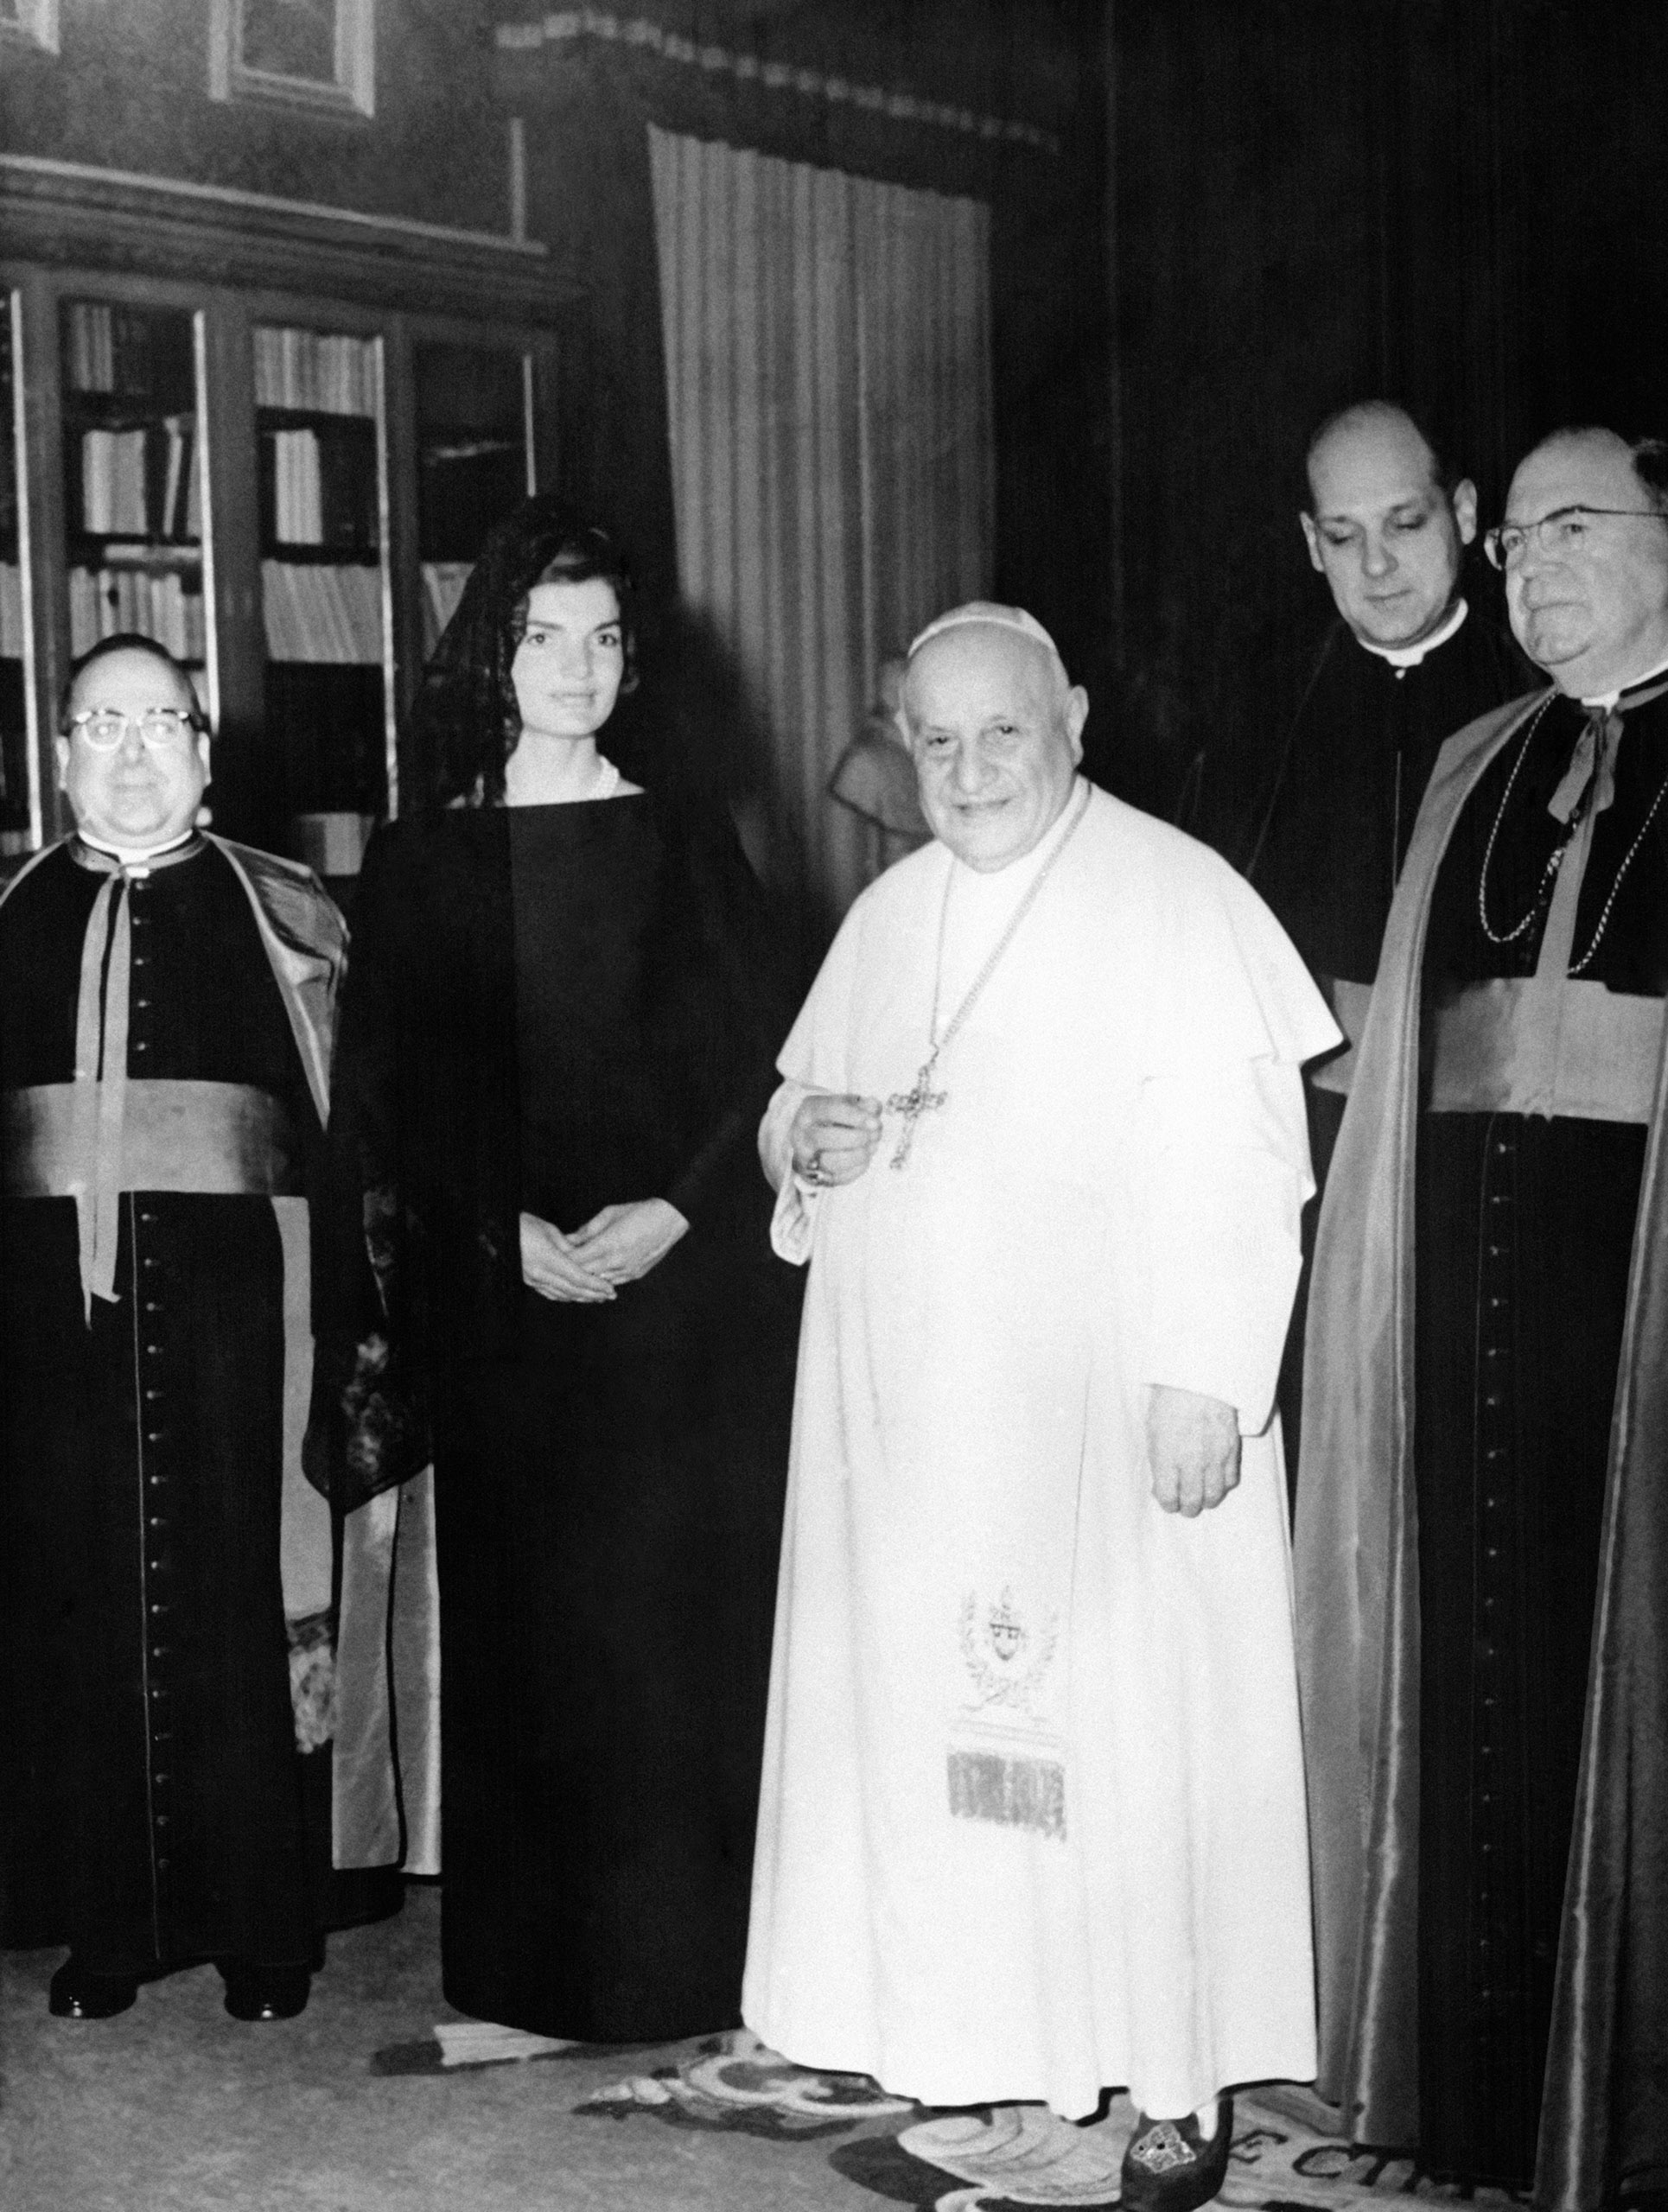 Jacqueline Kennedy stands next to Pope John XXIII during an audience in the Pontiff's private library in the Vatican, Italy, March 11, 1962.